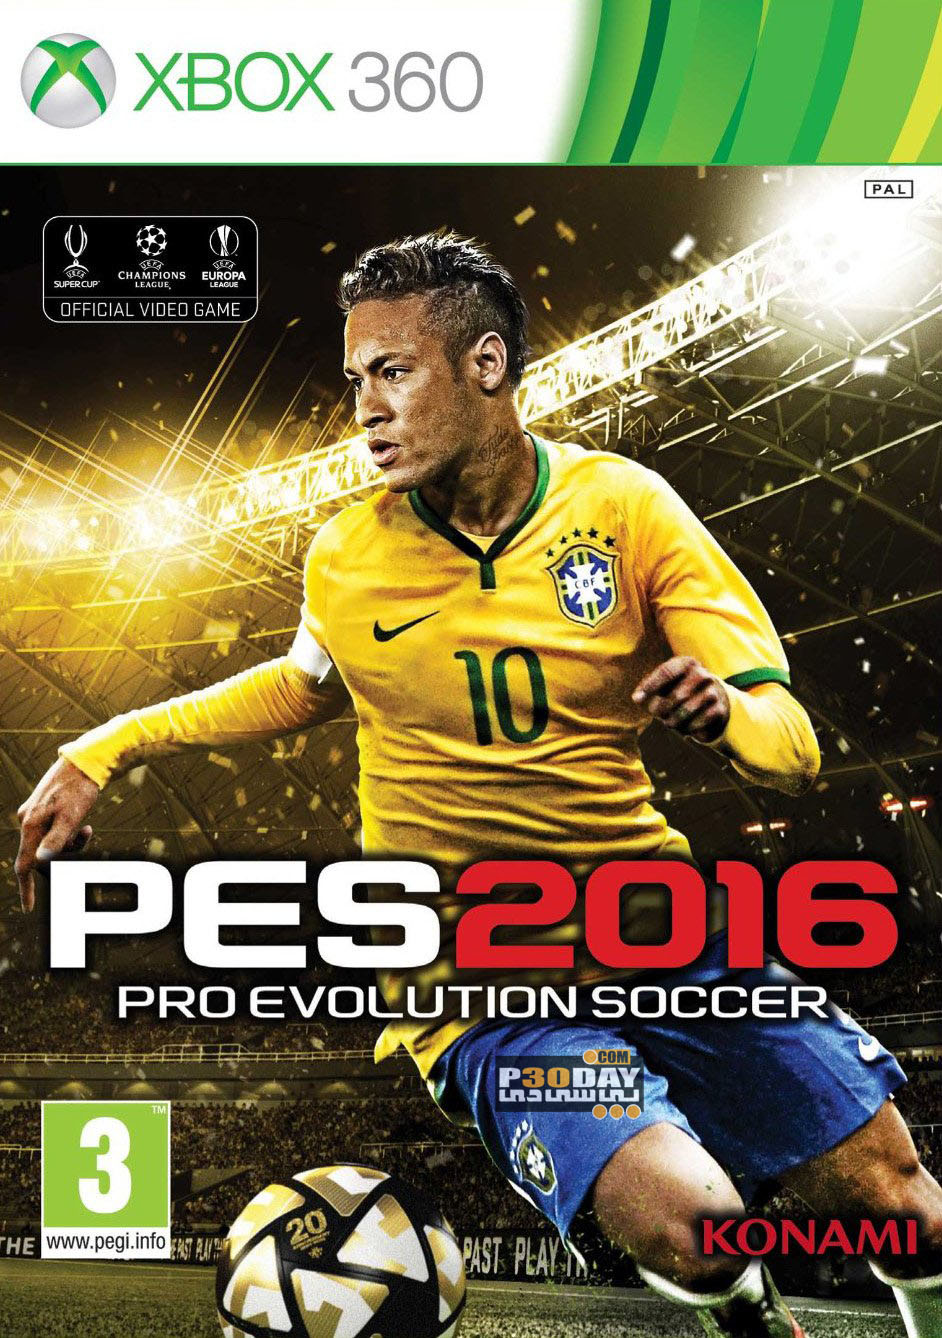 Pro Evolution Soccer 2016 For XBOX360